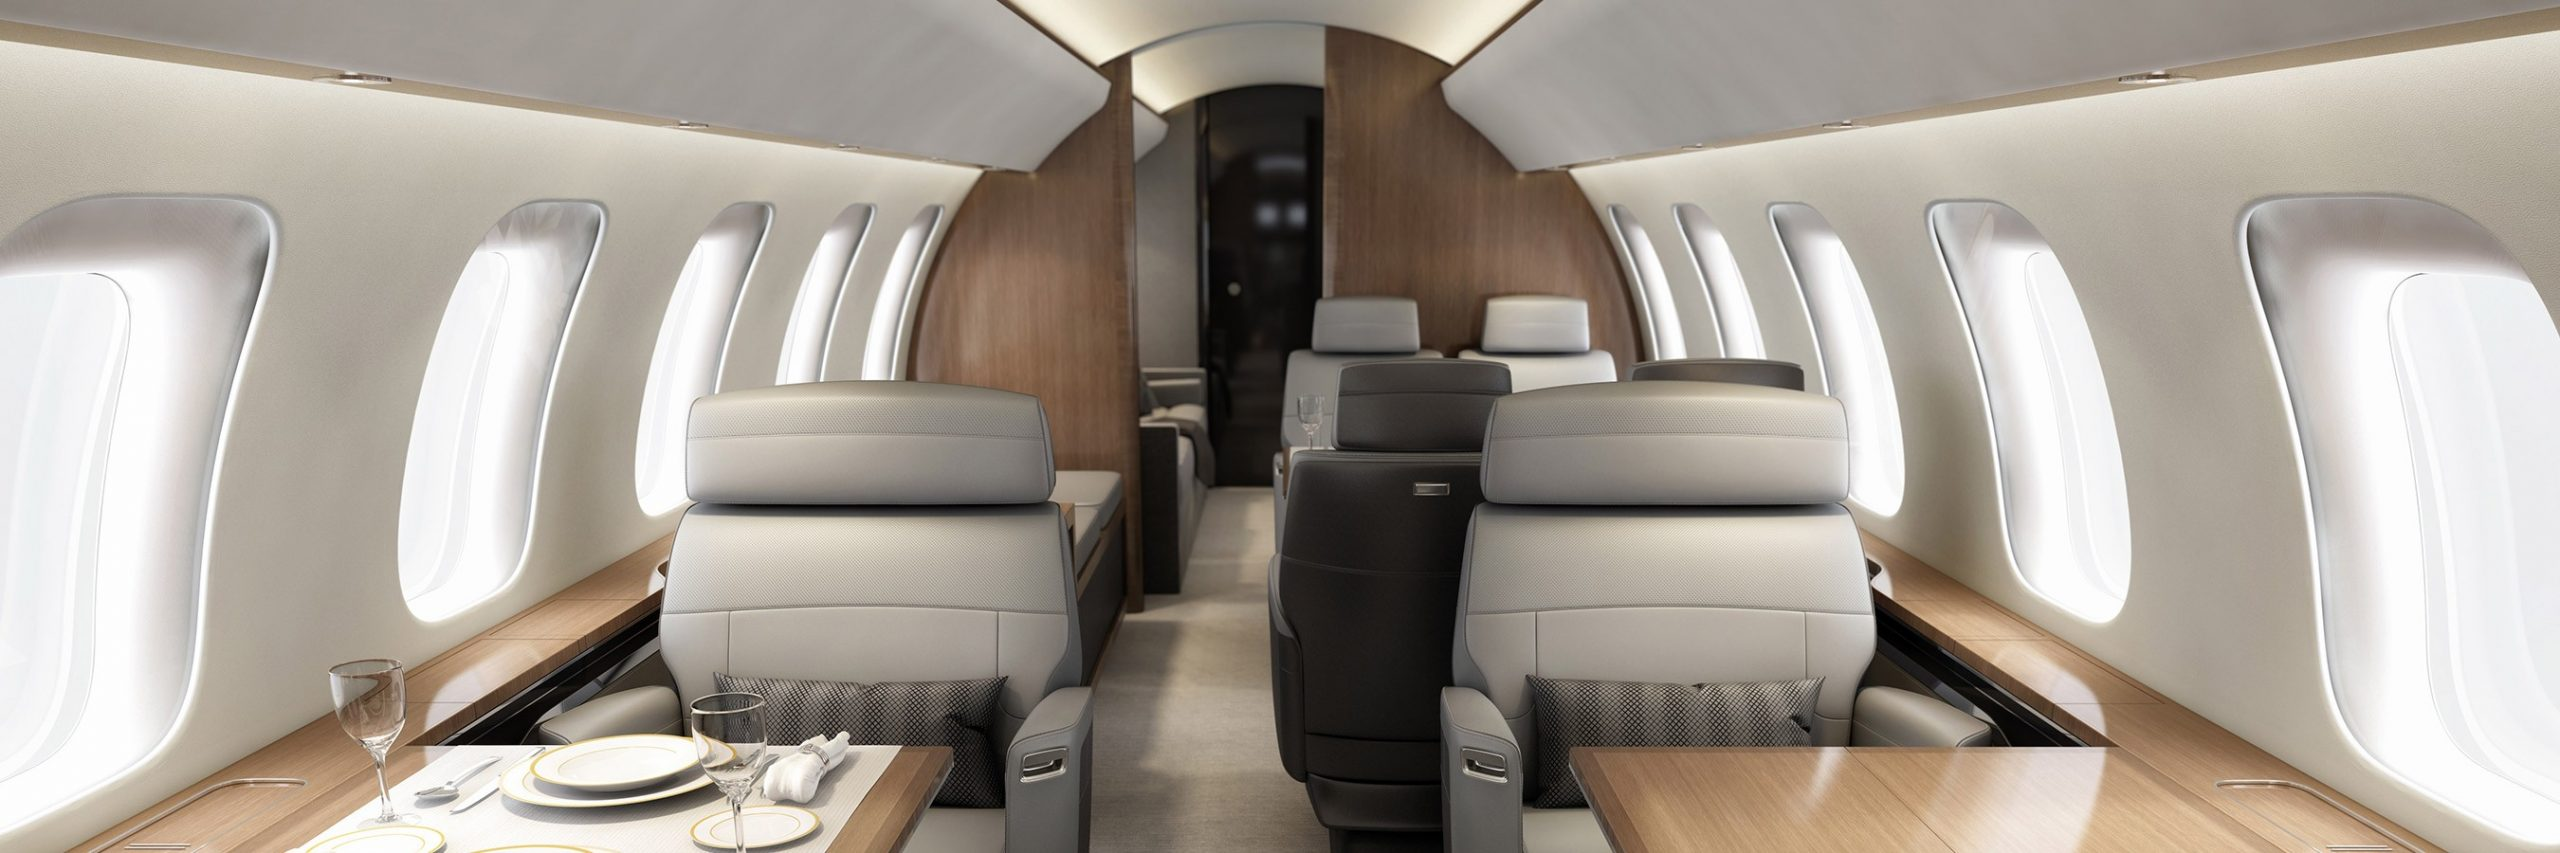 Bombardier private jet charter Bombardier business jet Bombardier corporate jet Bombardier charter4 scaled - Bombardier private jet builder Bombardier private charter and Bombardier jet broker